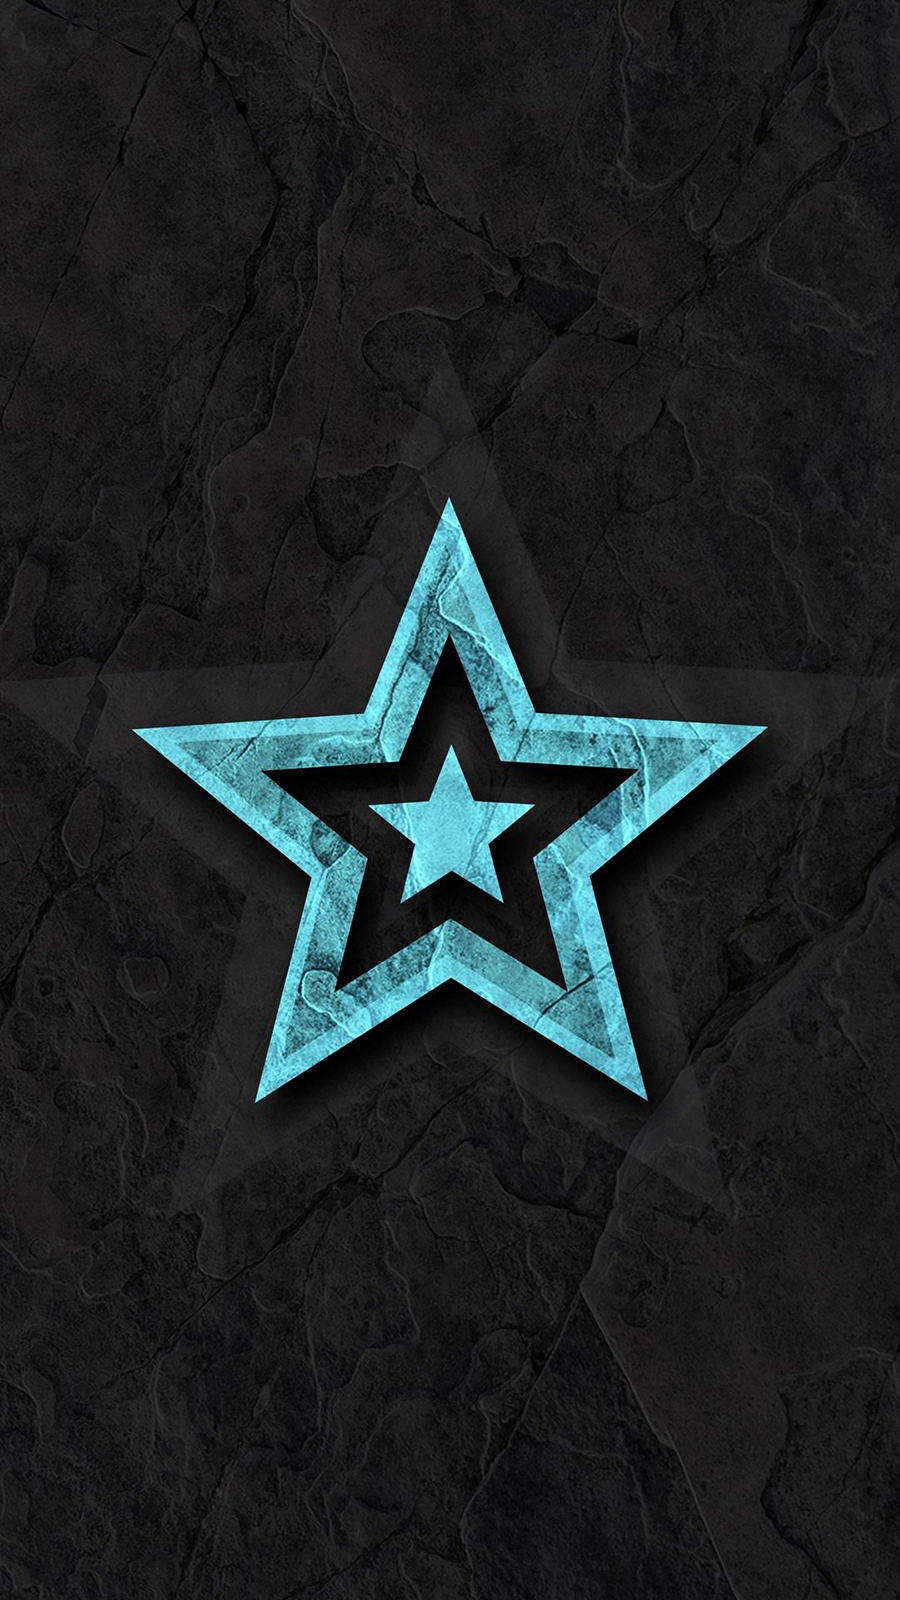 Blue Star Wallpapers Free Download For Your Device